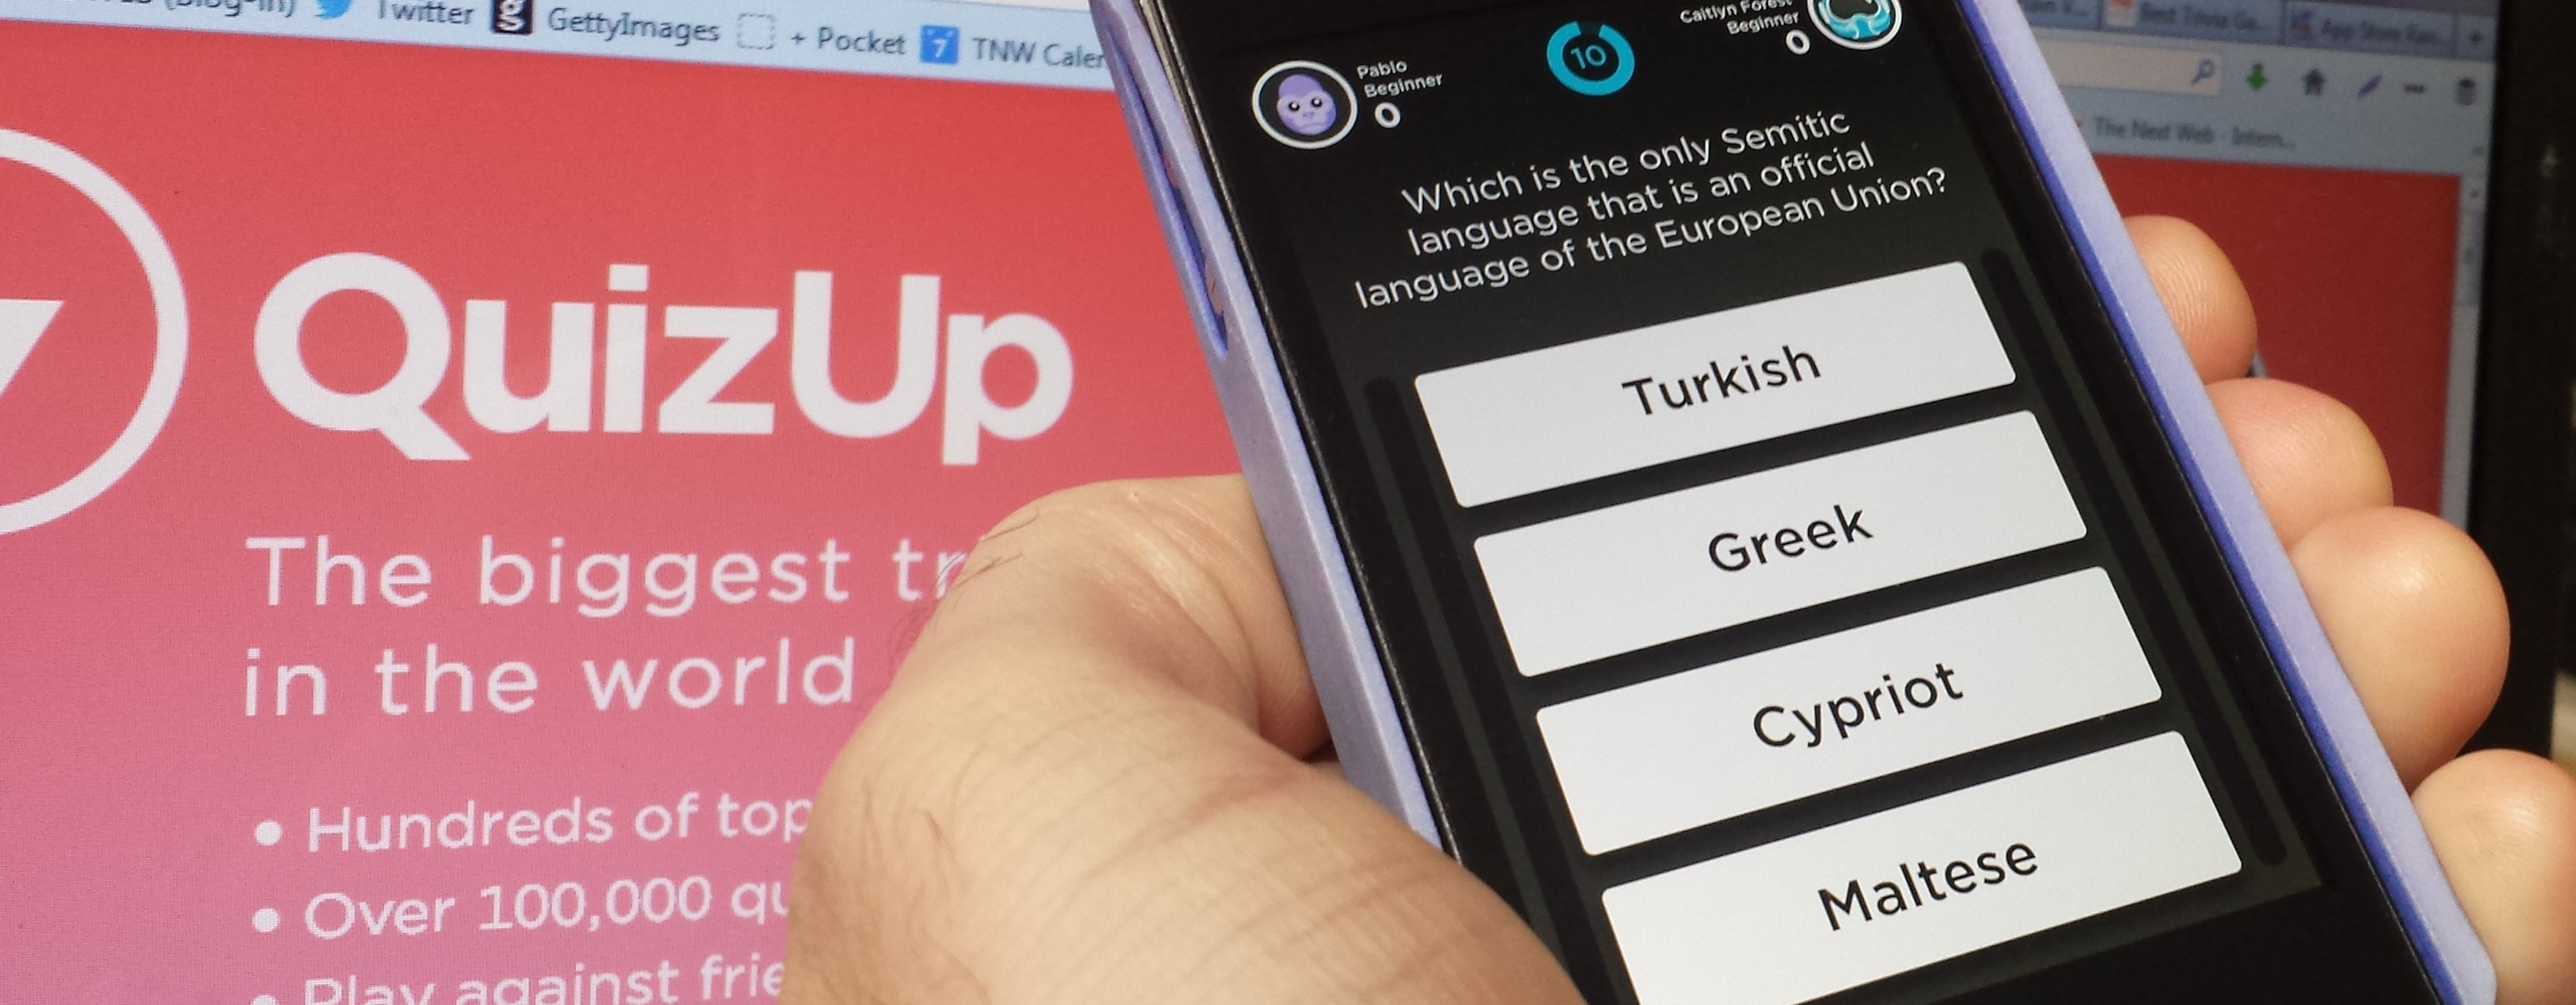 Quizup Trivia App for iOS Now Has More than 5 Million Players